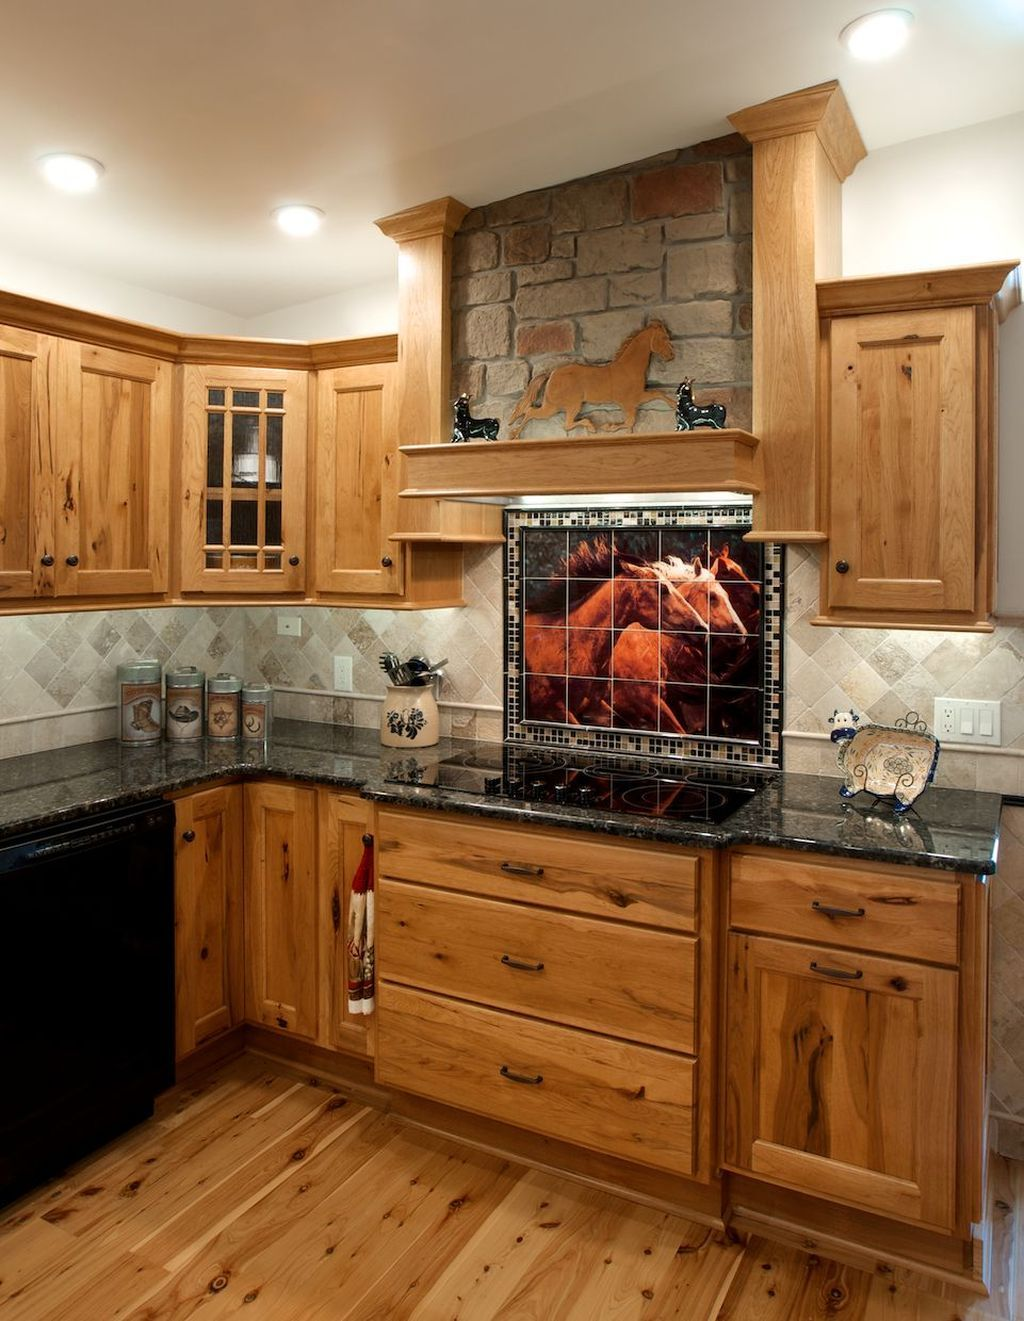 42 lovely rustic western style kitchen decorations ideas western kitchen western home decor on kitchen decor themes rustic id=12041